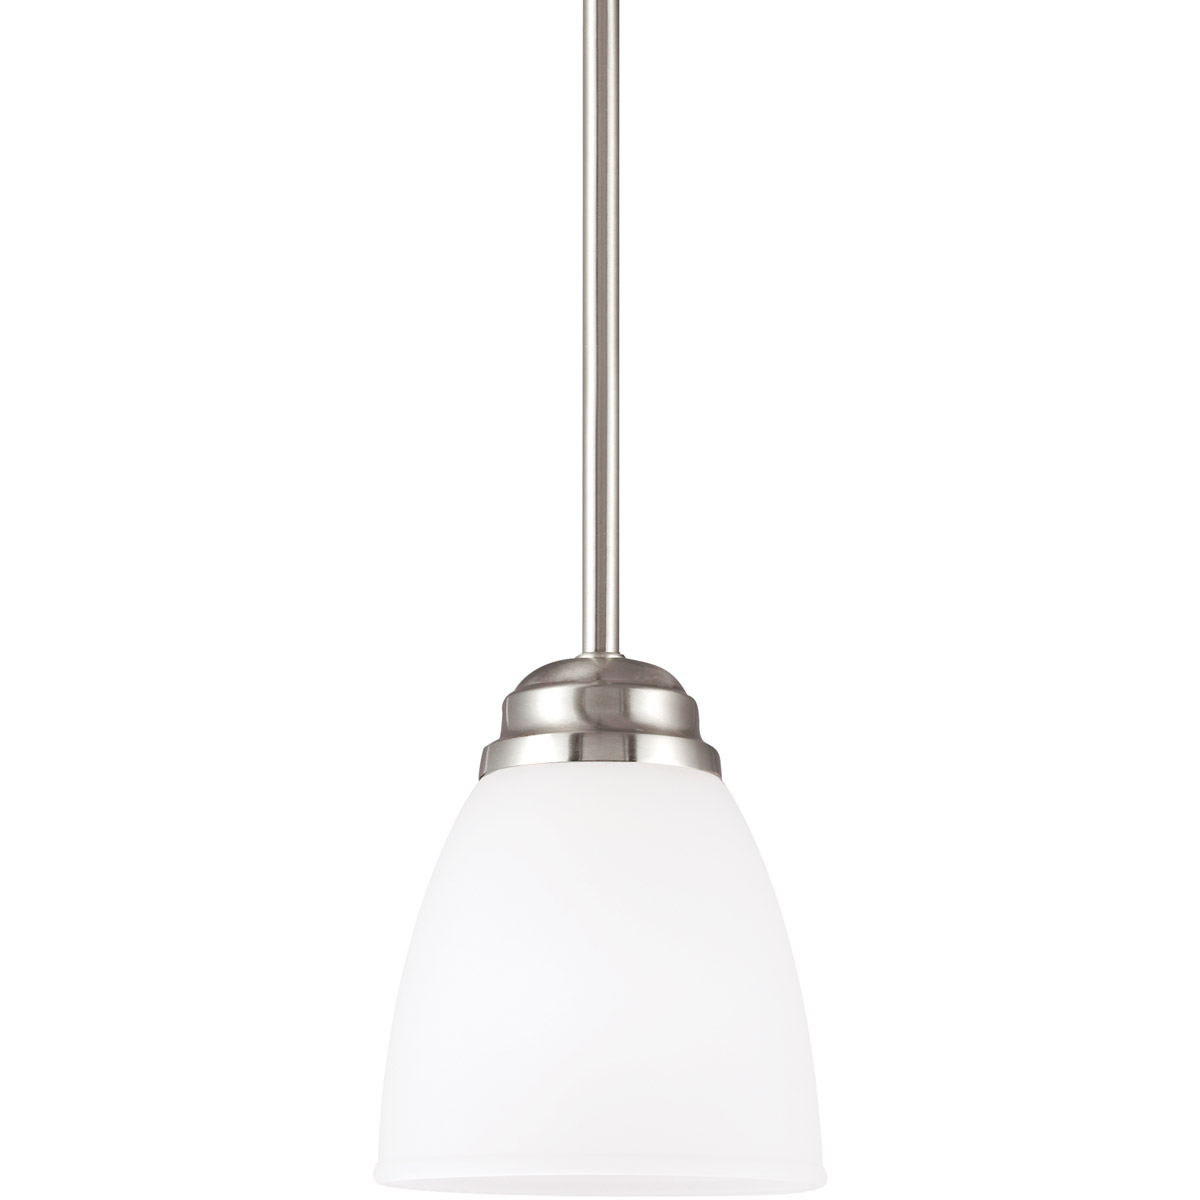 Sea Gull Northbrook 1 Light Mini Pendant in Brushed Nickel 6112401-962 photo